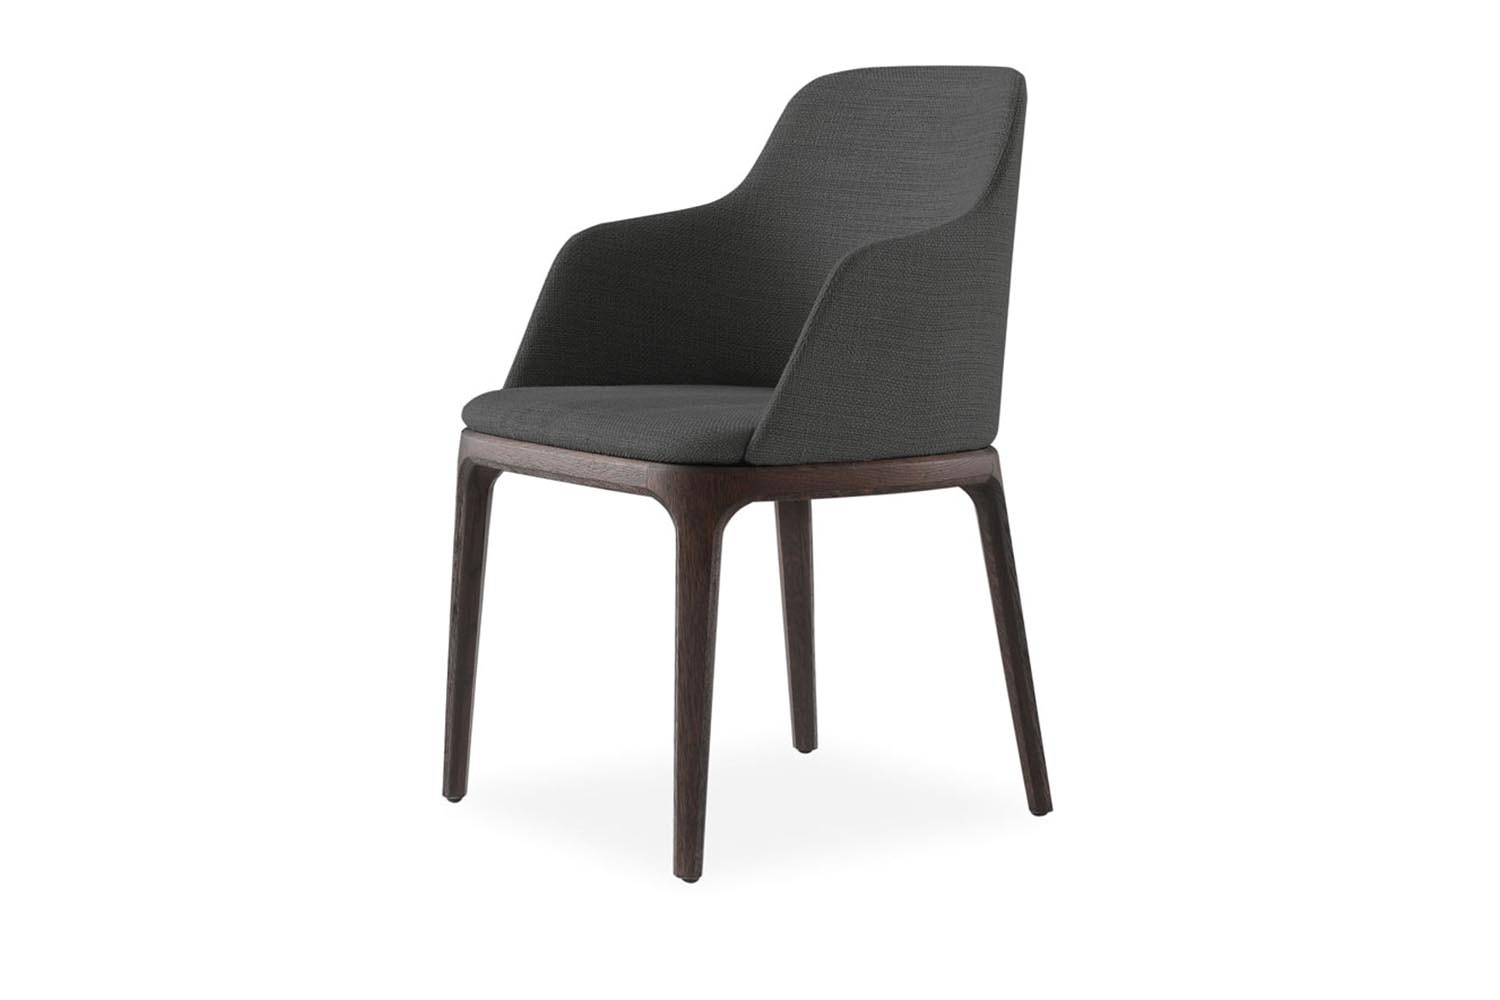 Grace Chair with Arms by Emmanuel Gallina for Poliform